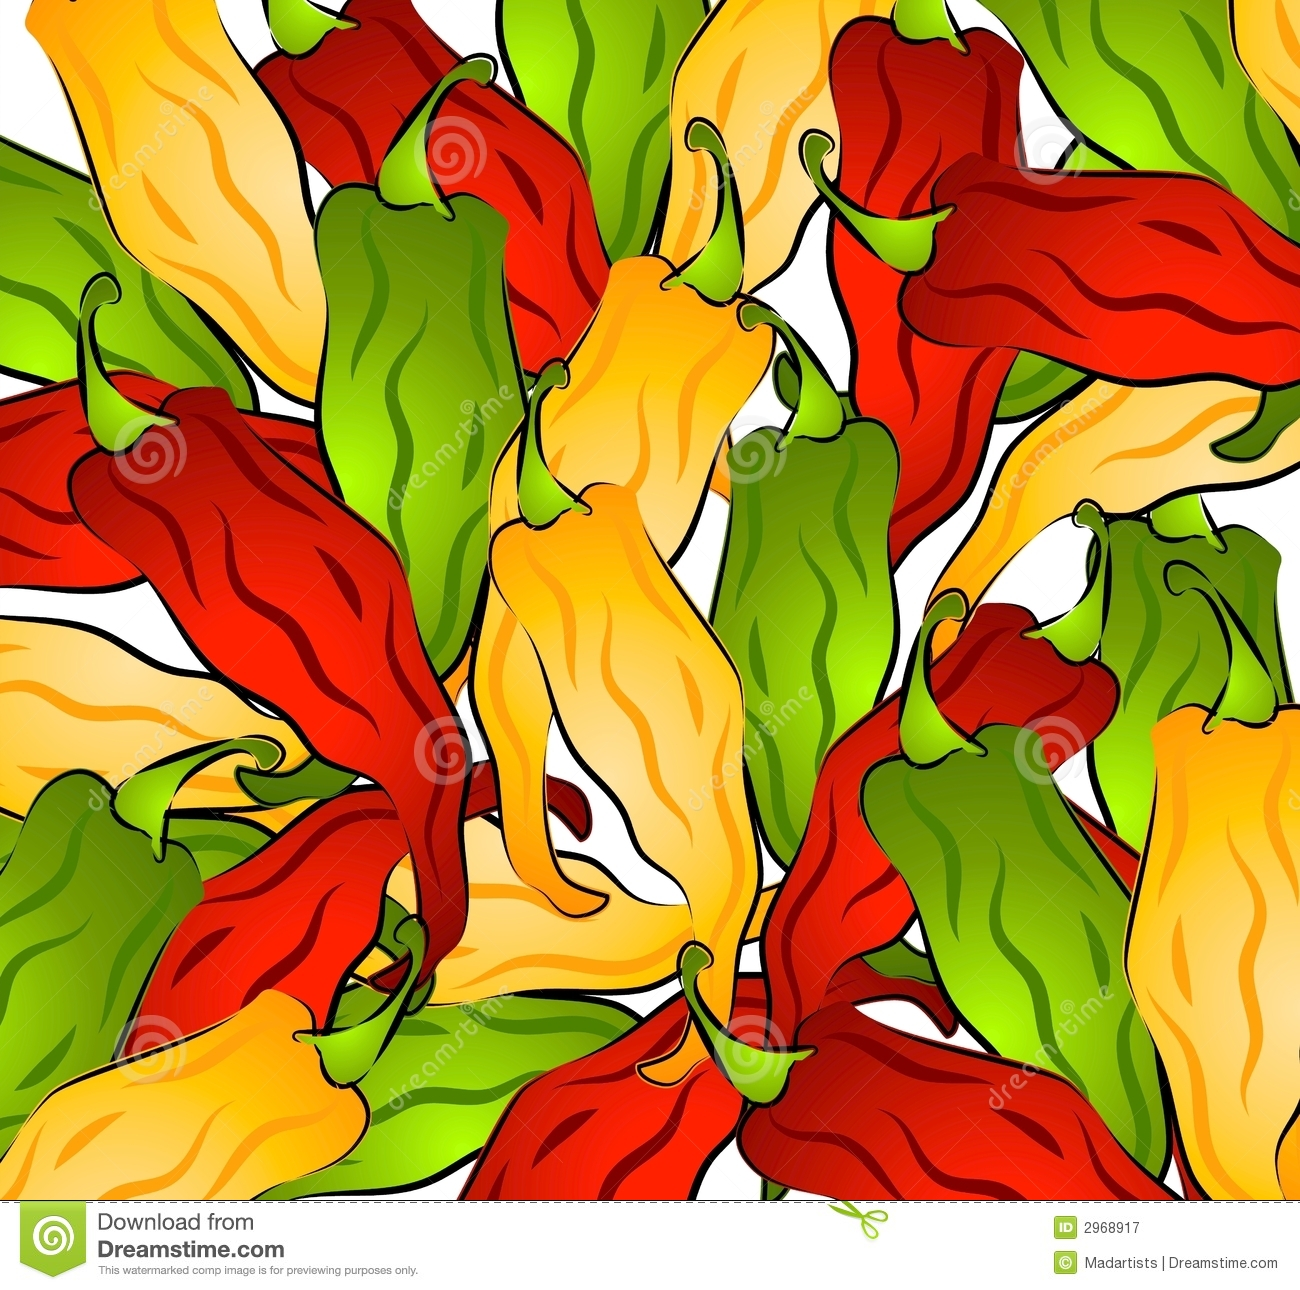 Hot Chili Peppers Background Royalty Free Stock Photography Image 2968917